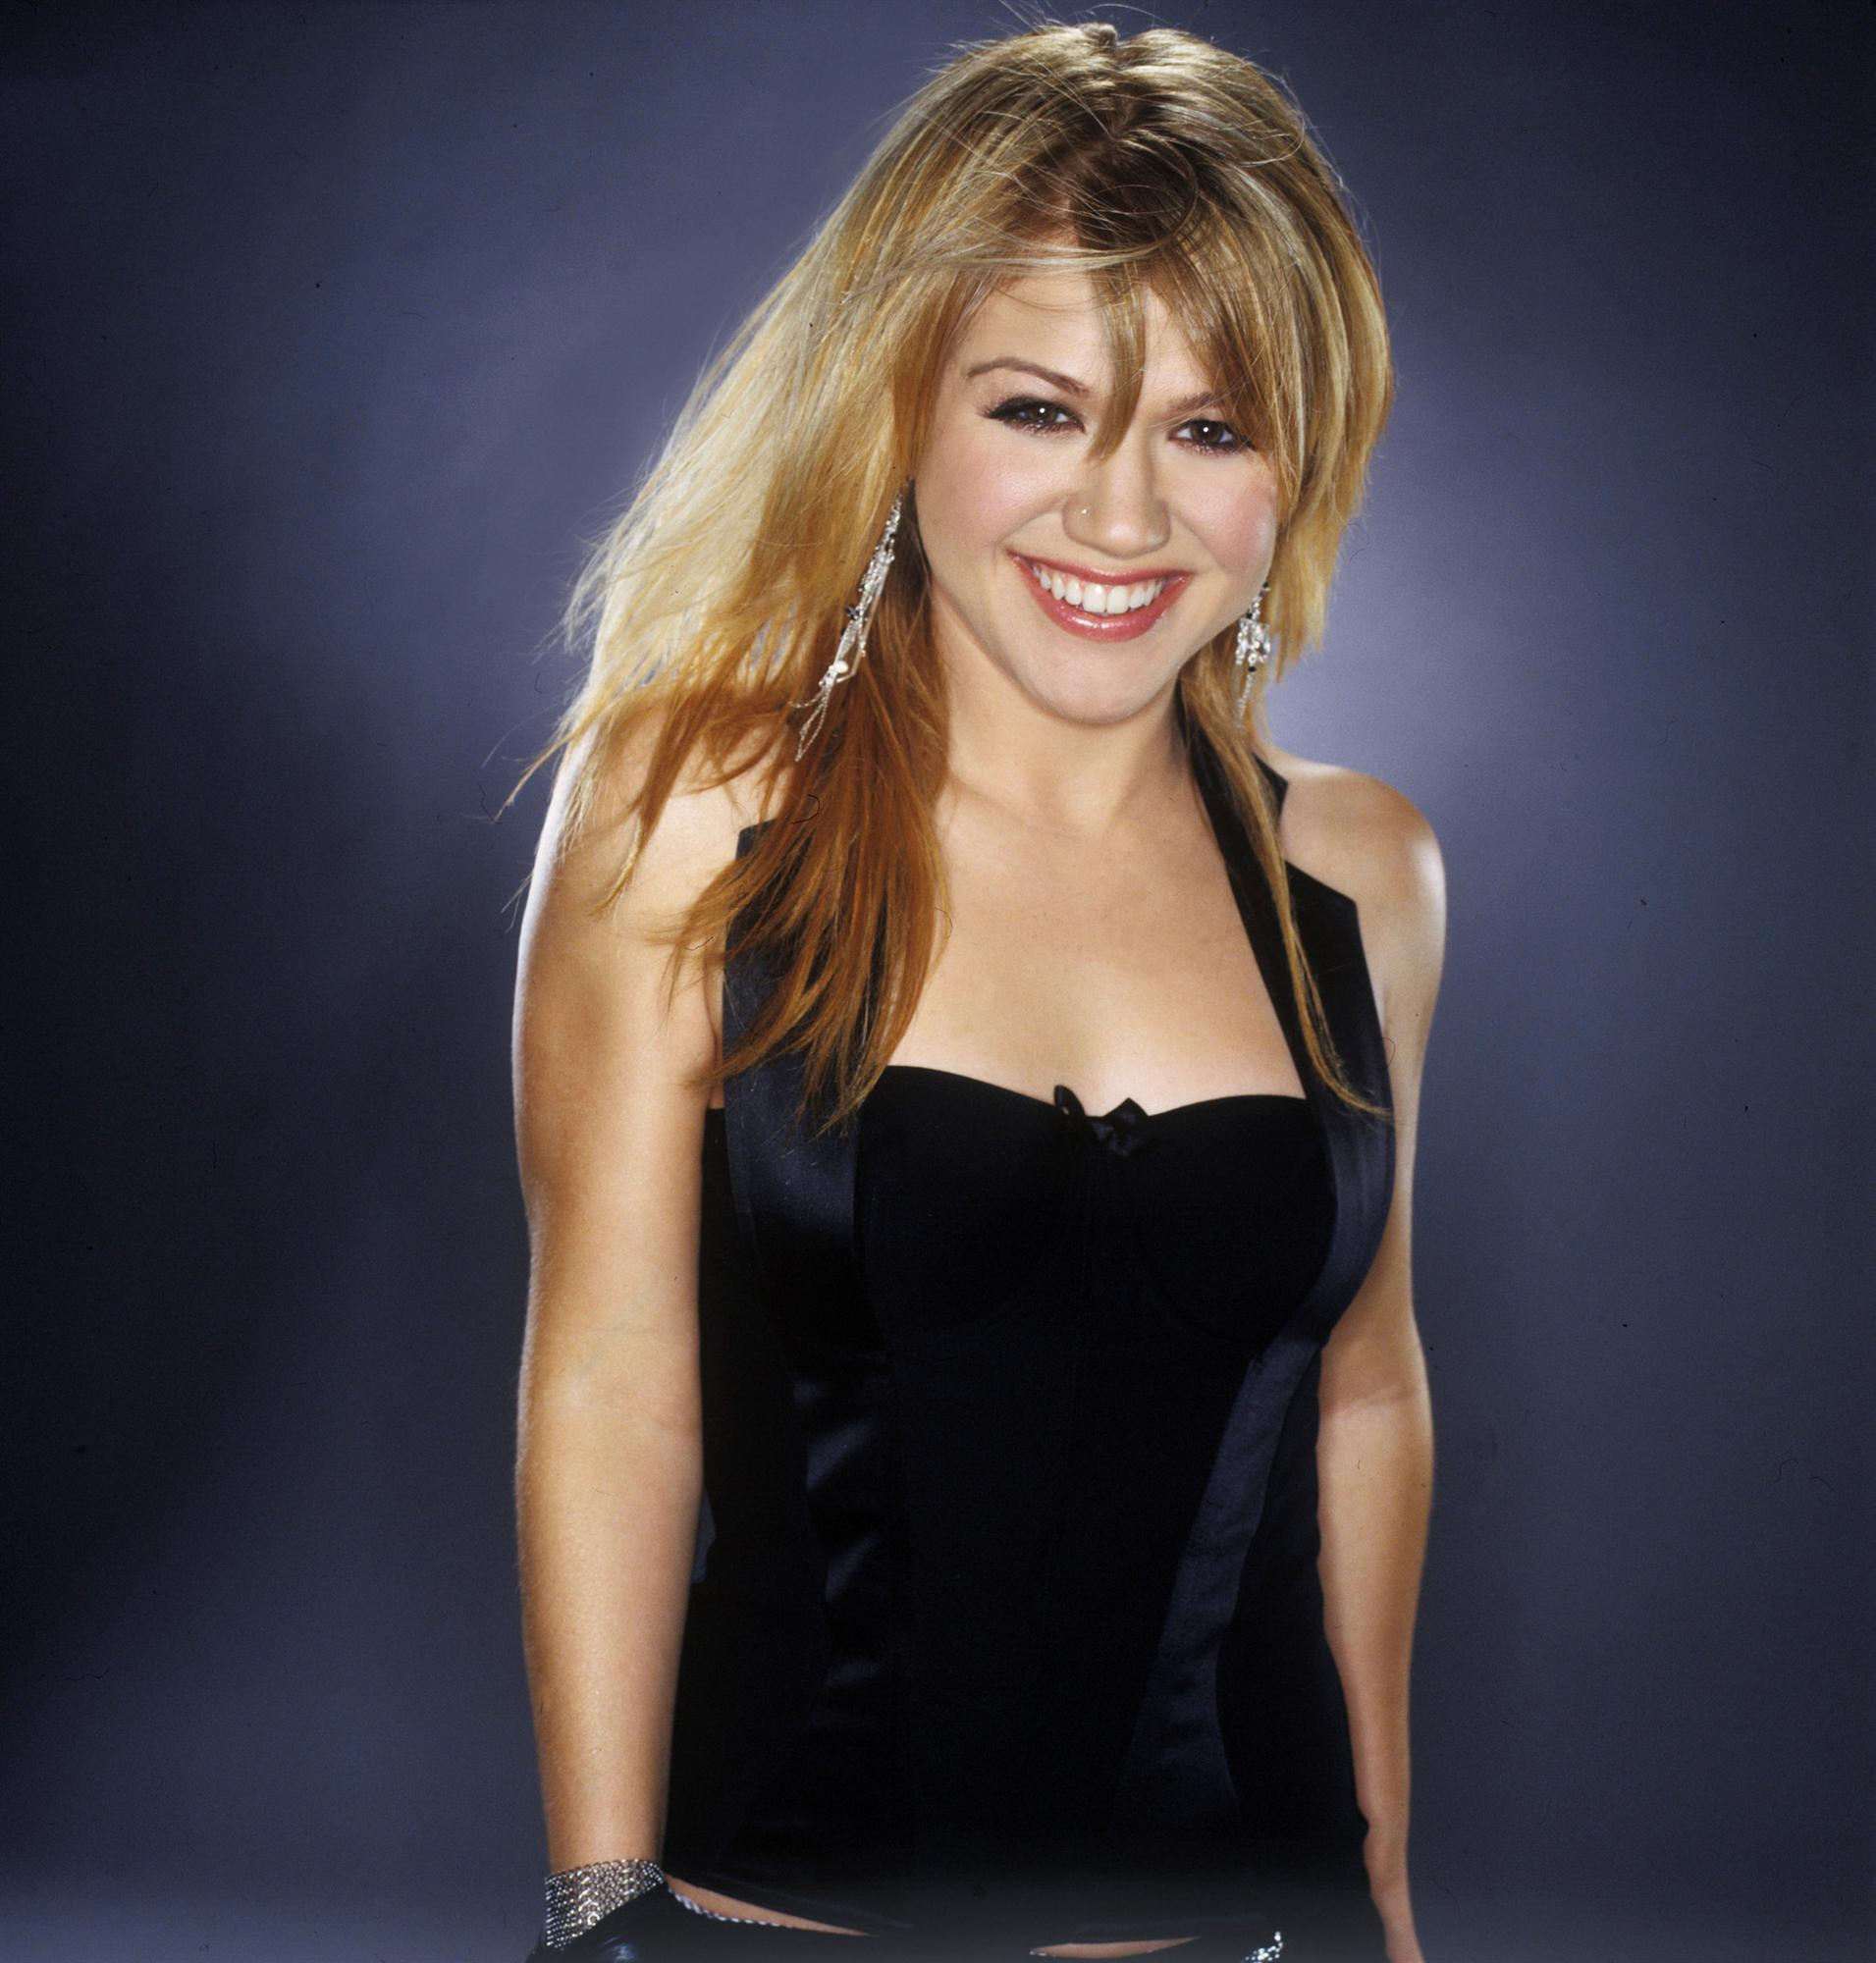 Kelly kelly clarkson photo 1418914 fanpop for New pictures